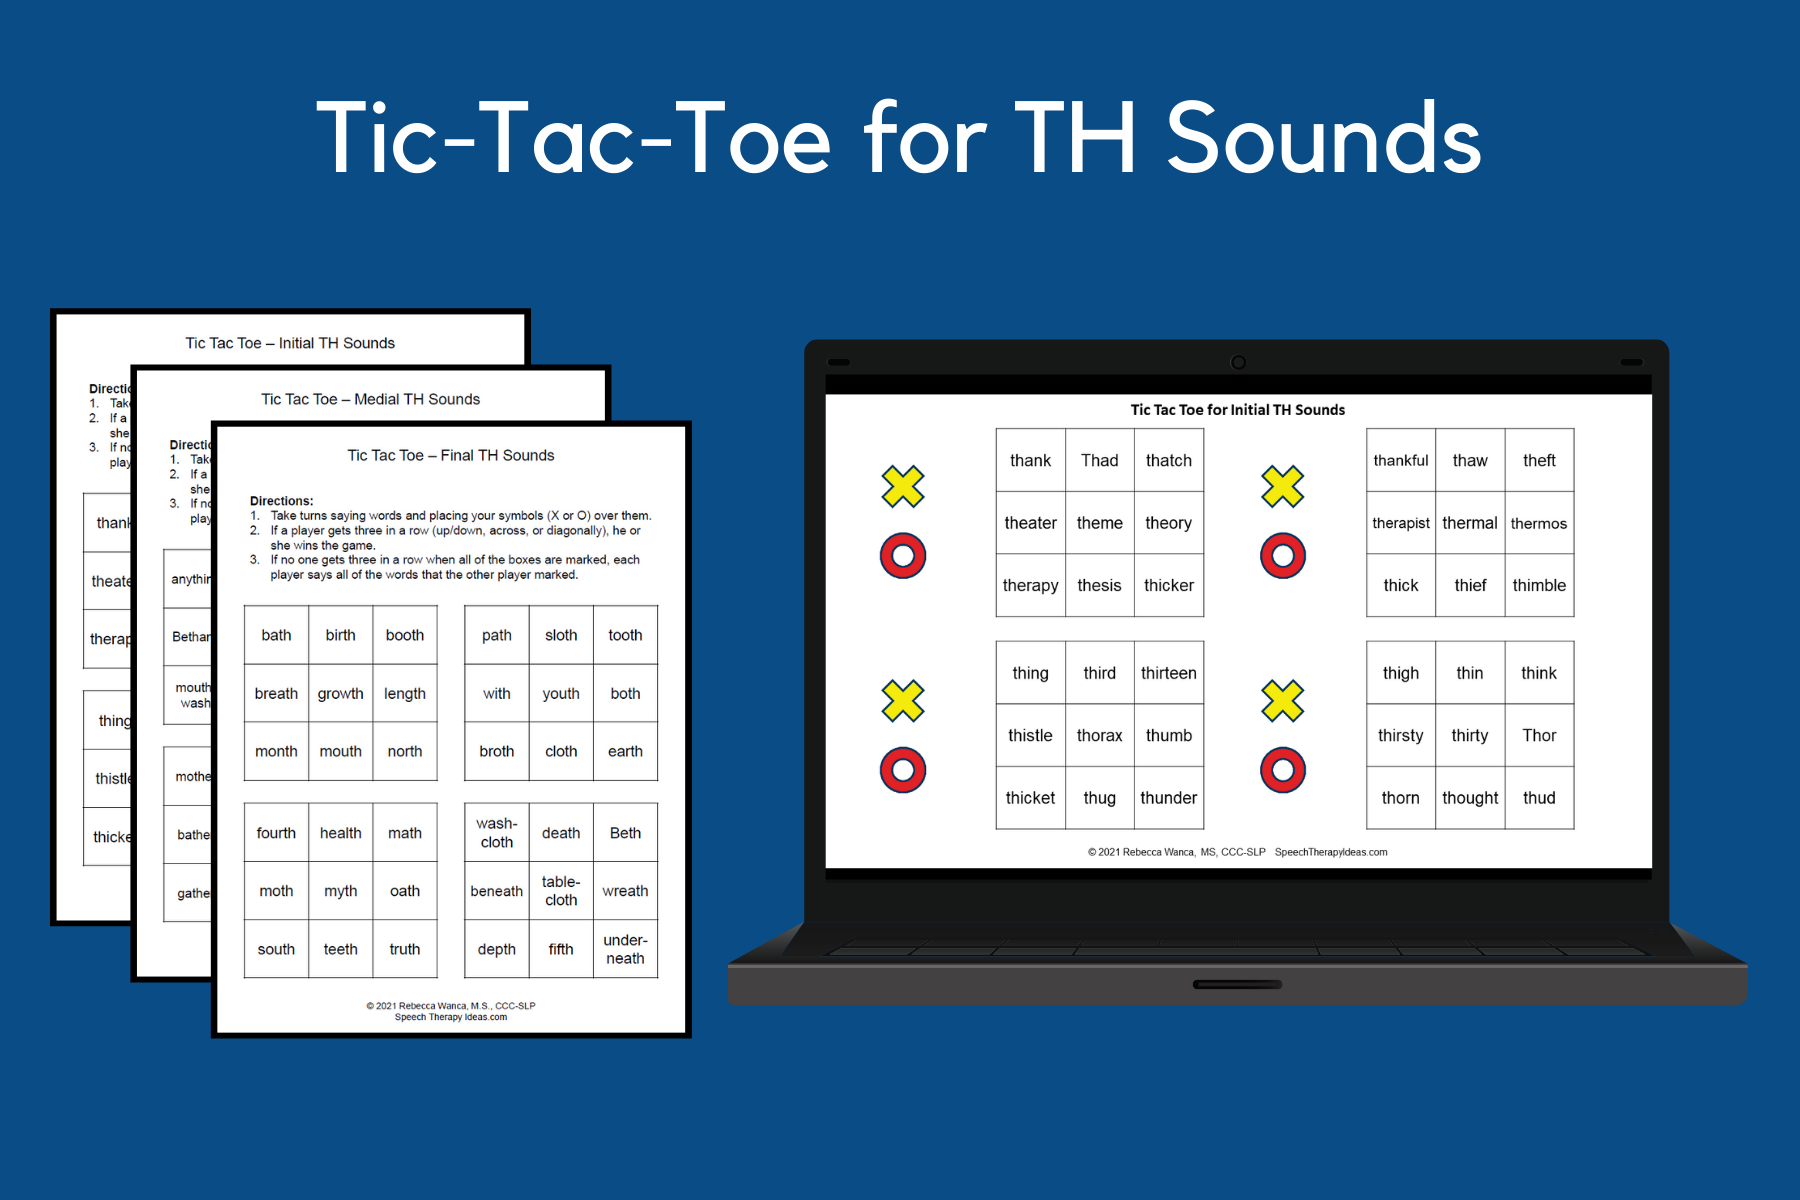 Tic-Tac-Toe Games For TH Sounds